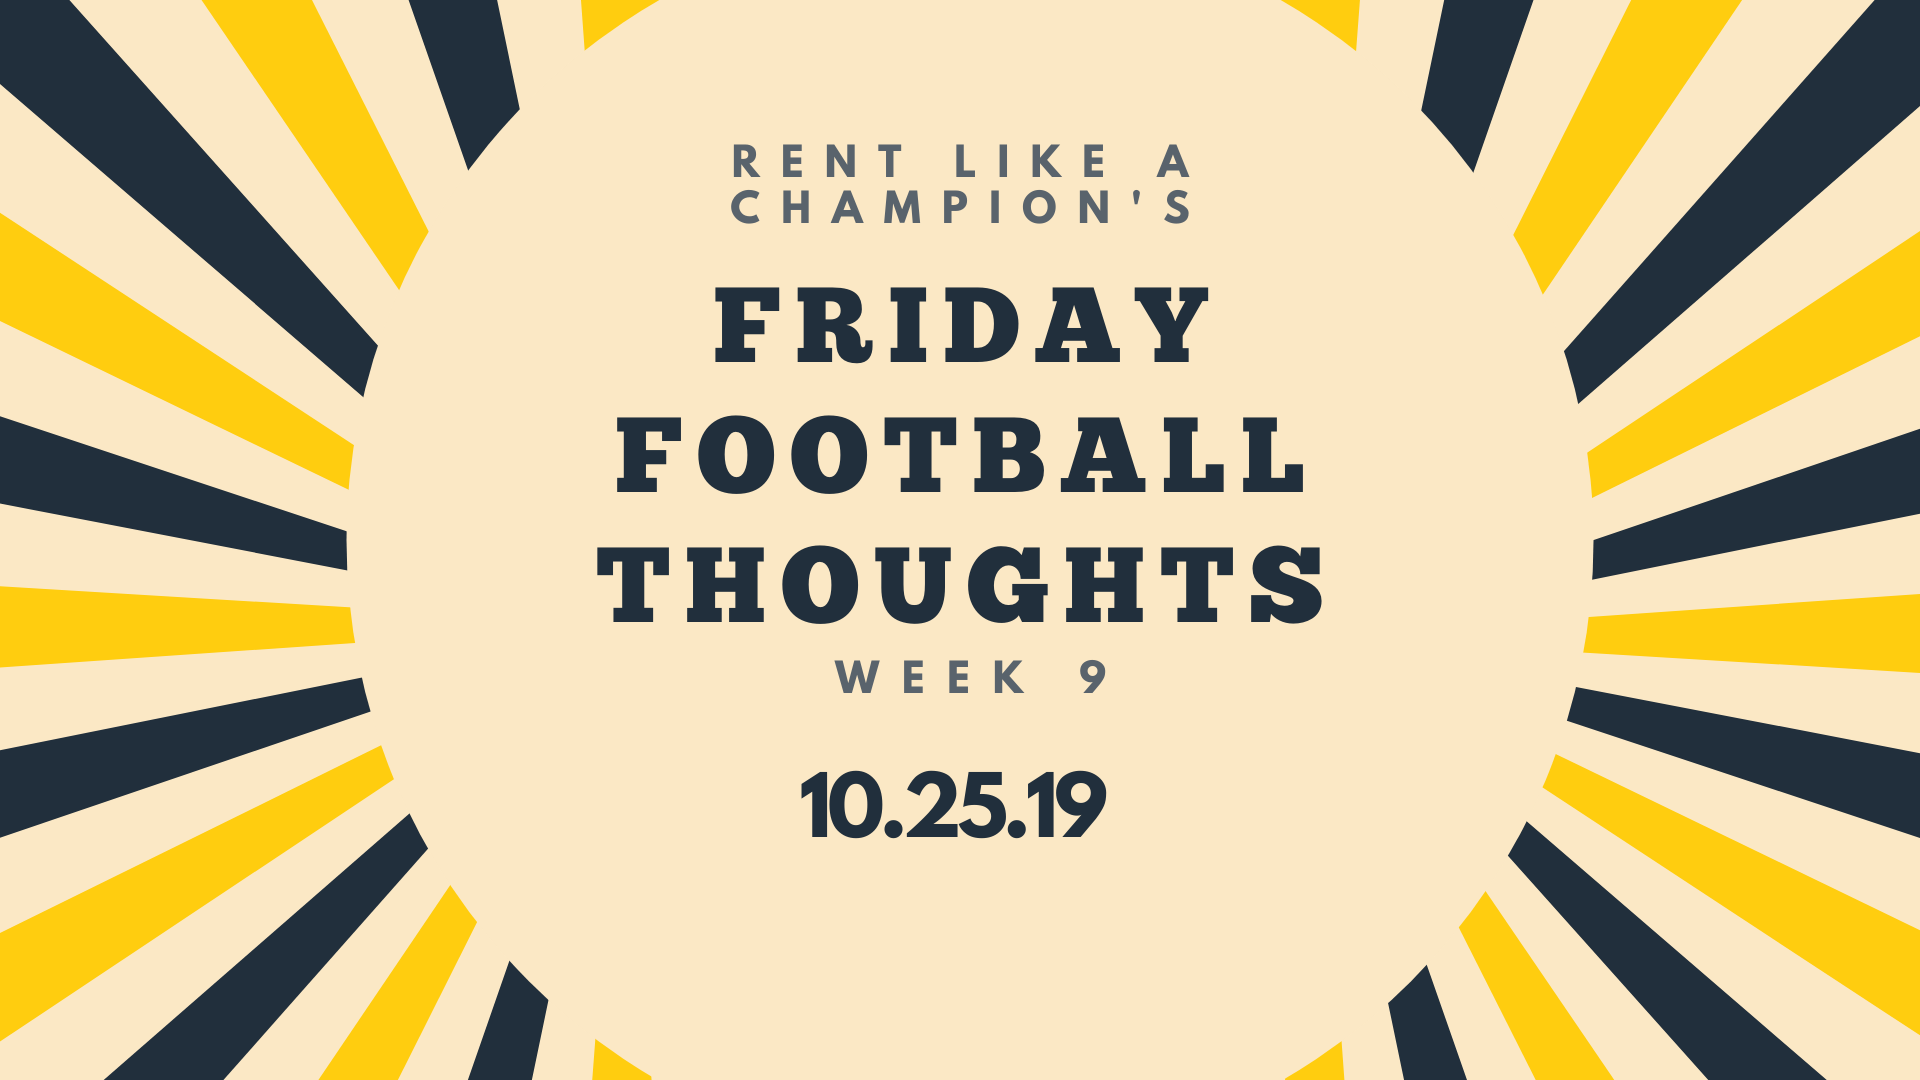 Friday Football Thoughts Template (1)